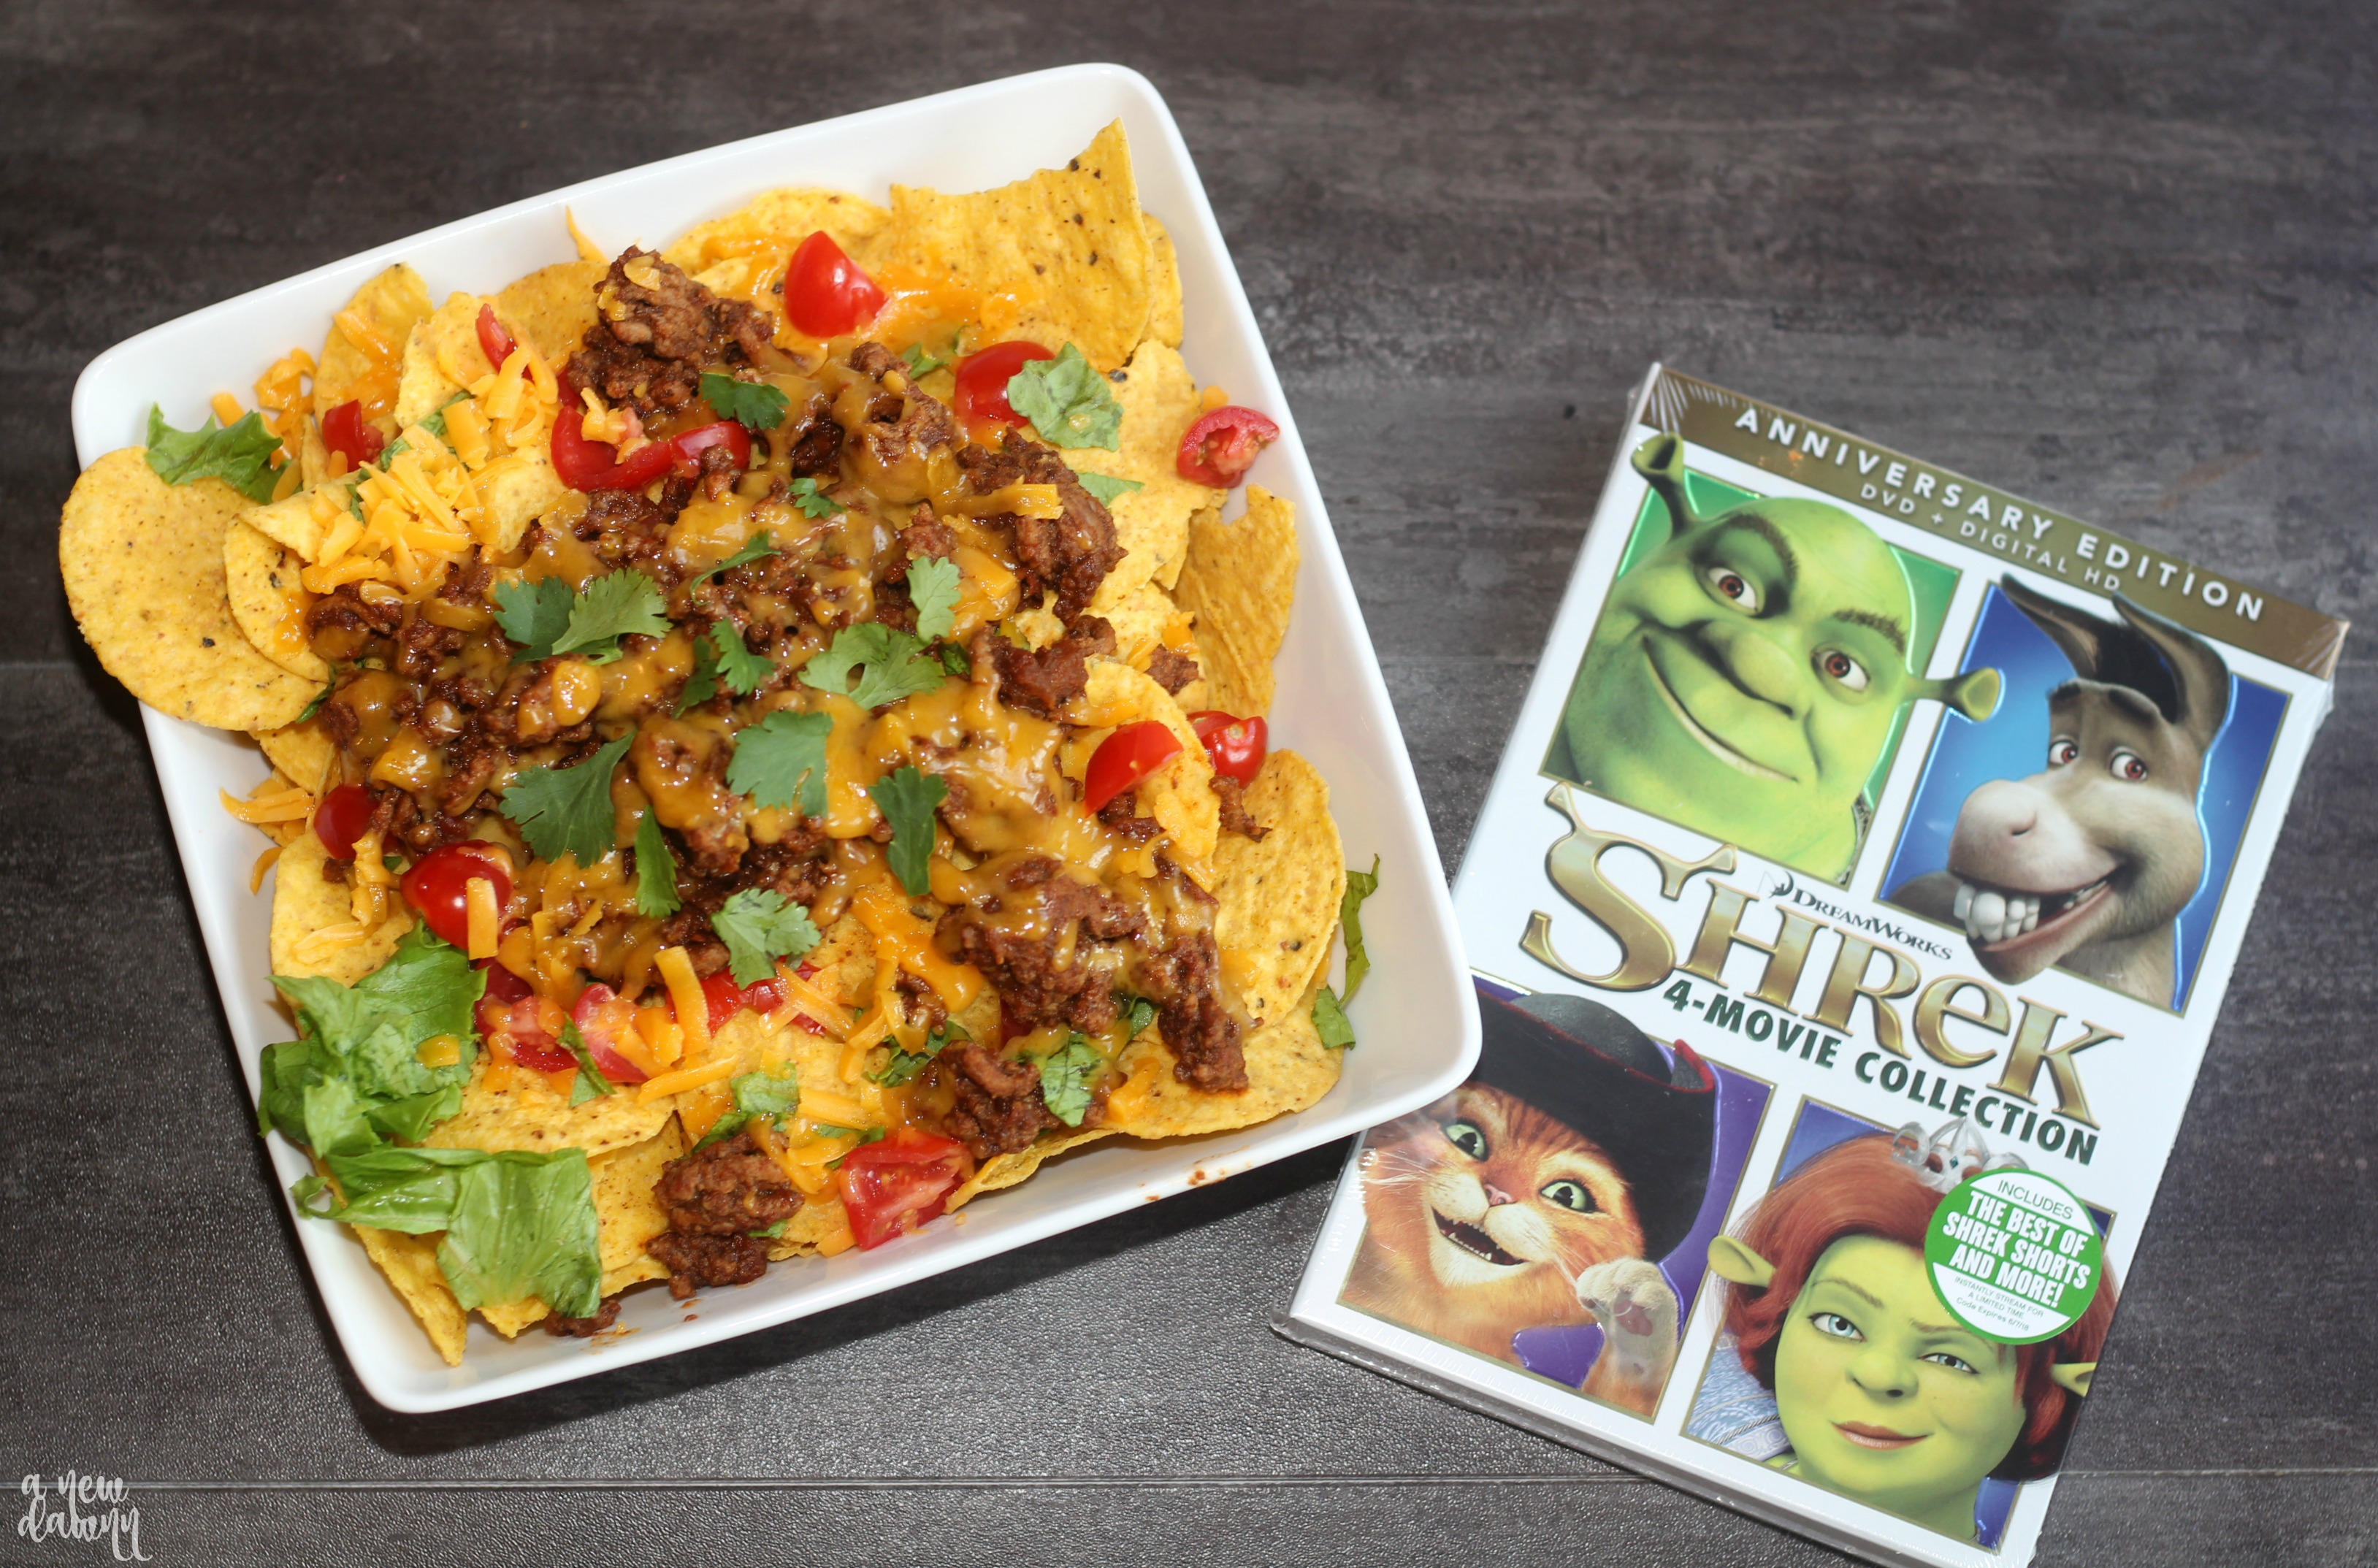 shrek-movie-nachos